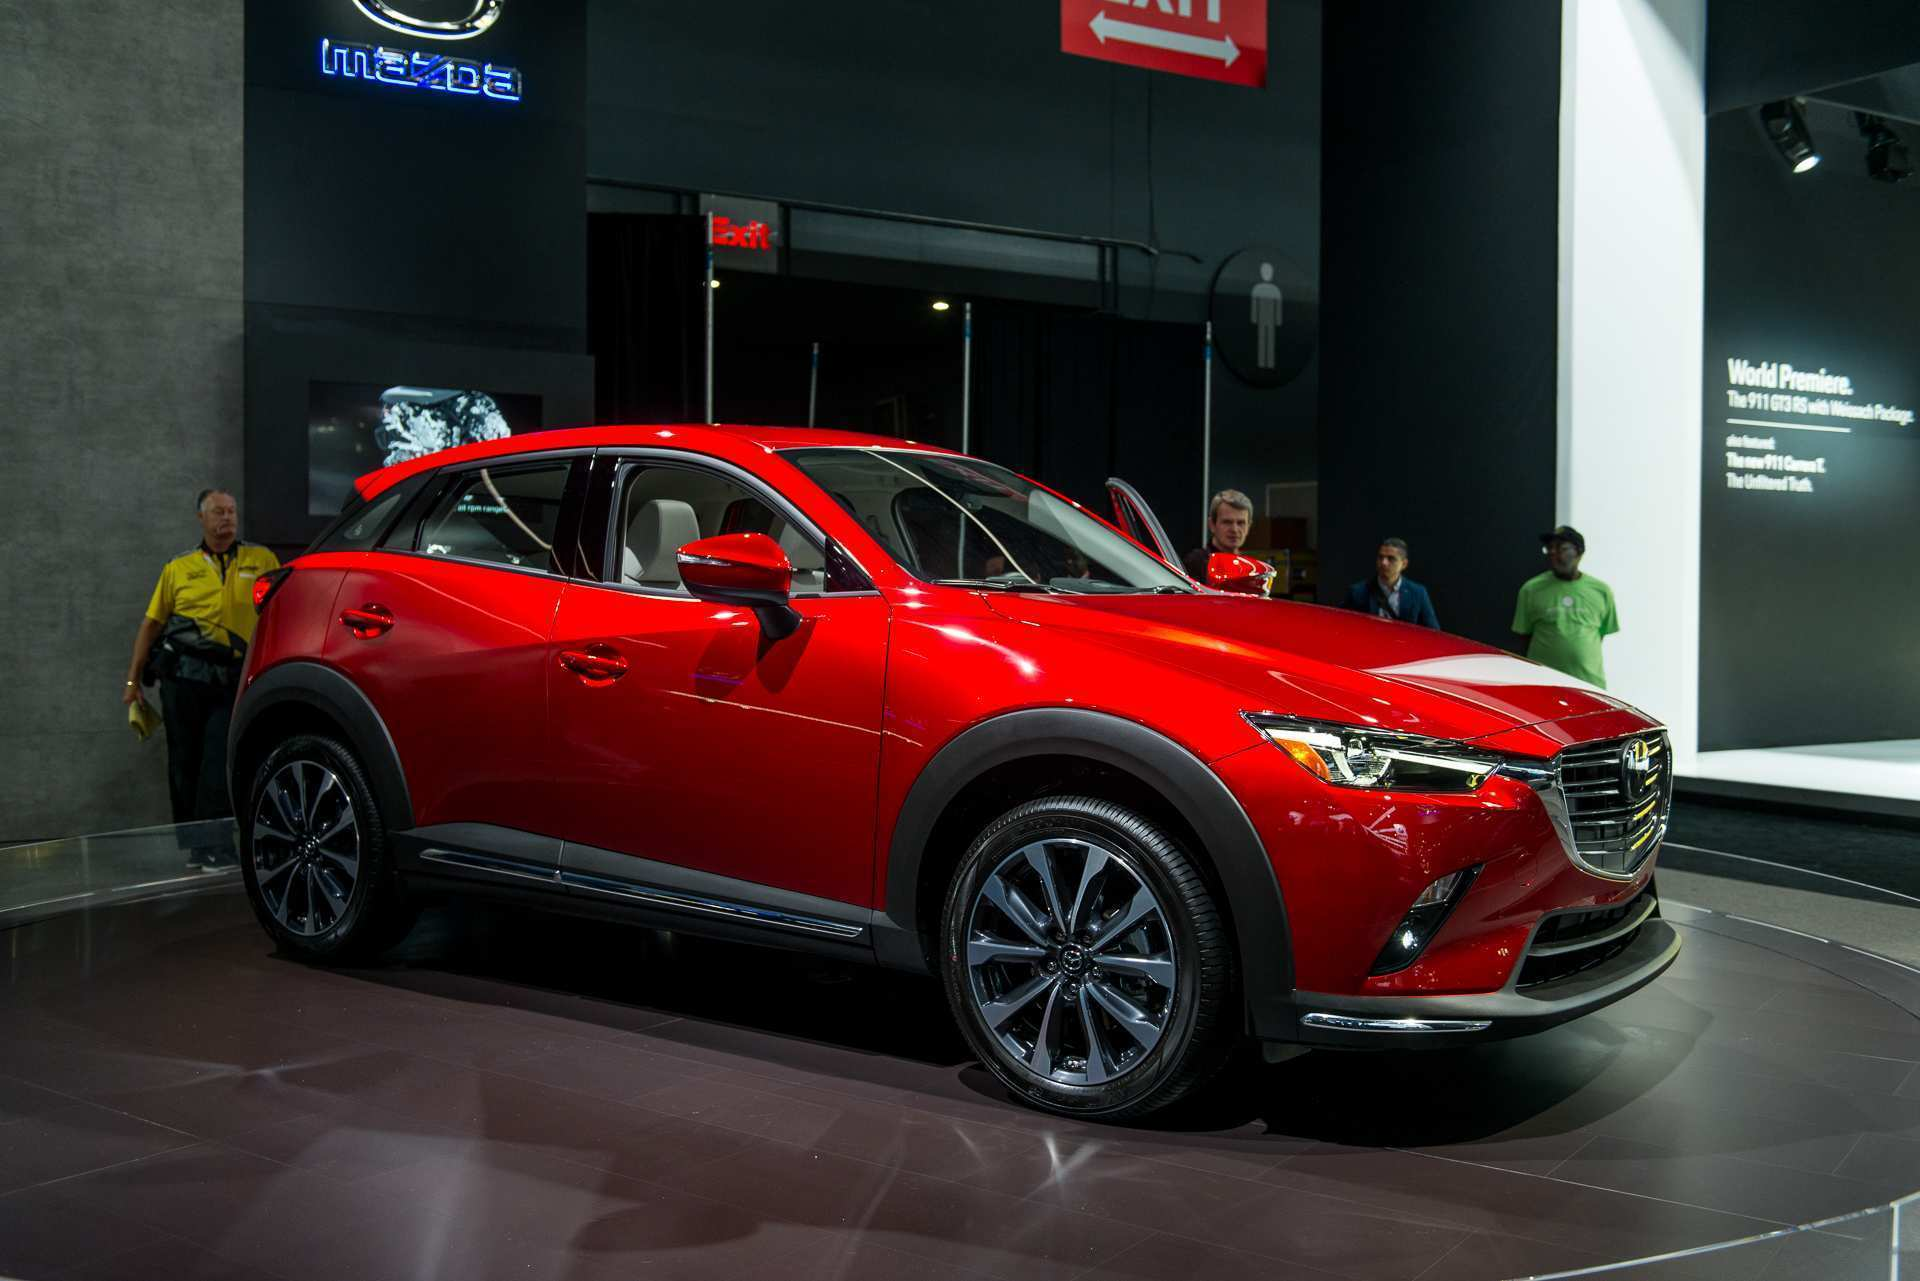 76 The Best 2020 Mazda CX 3 Price And Review